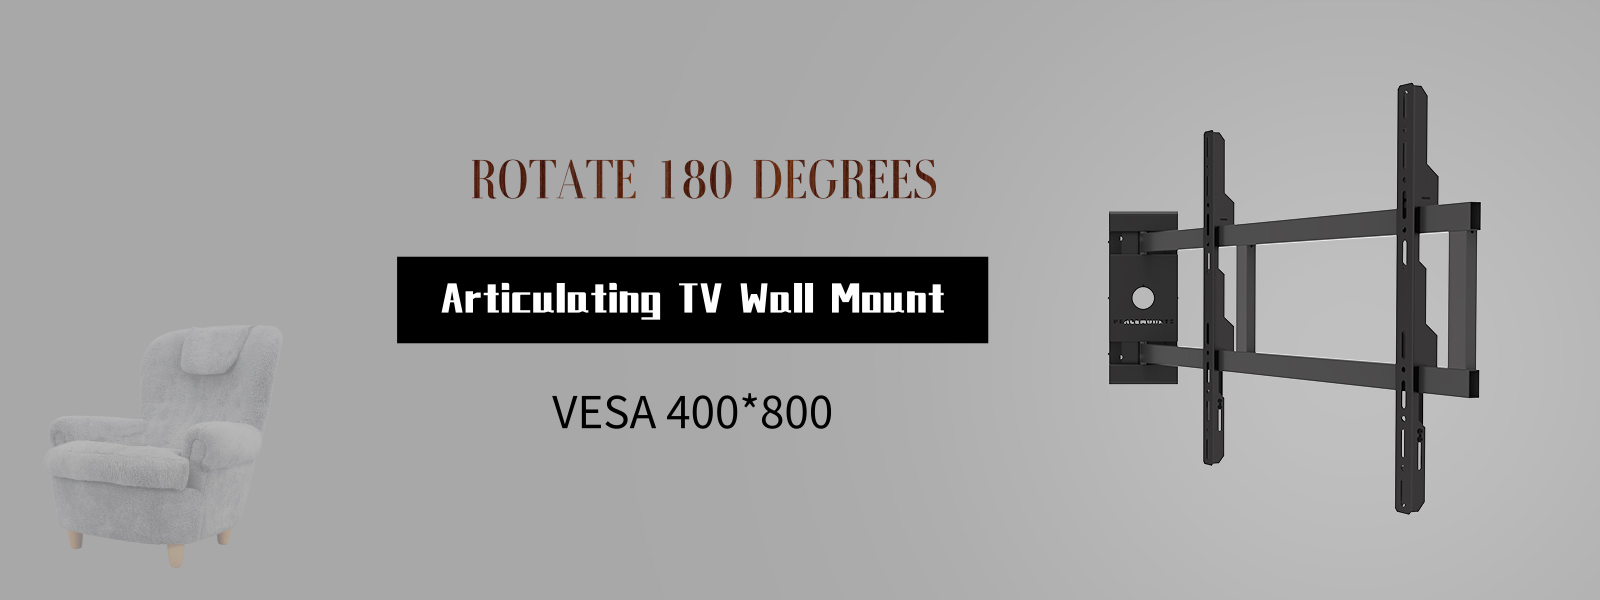 STW800_Rotate-180-degreesTSW800-TV-WALL-MOUNT2019.04